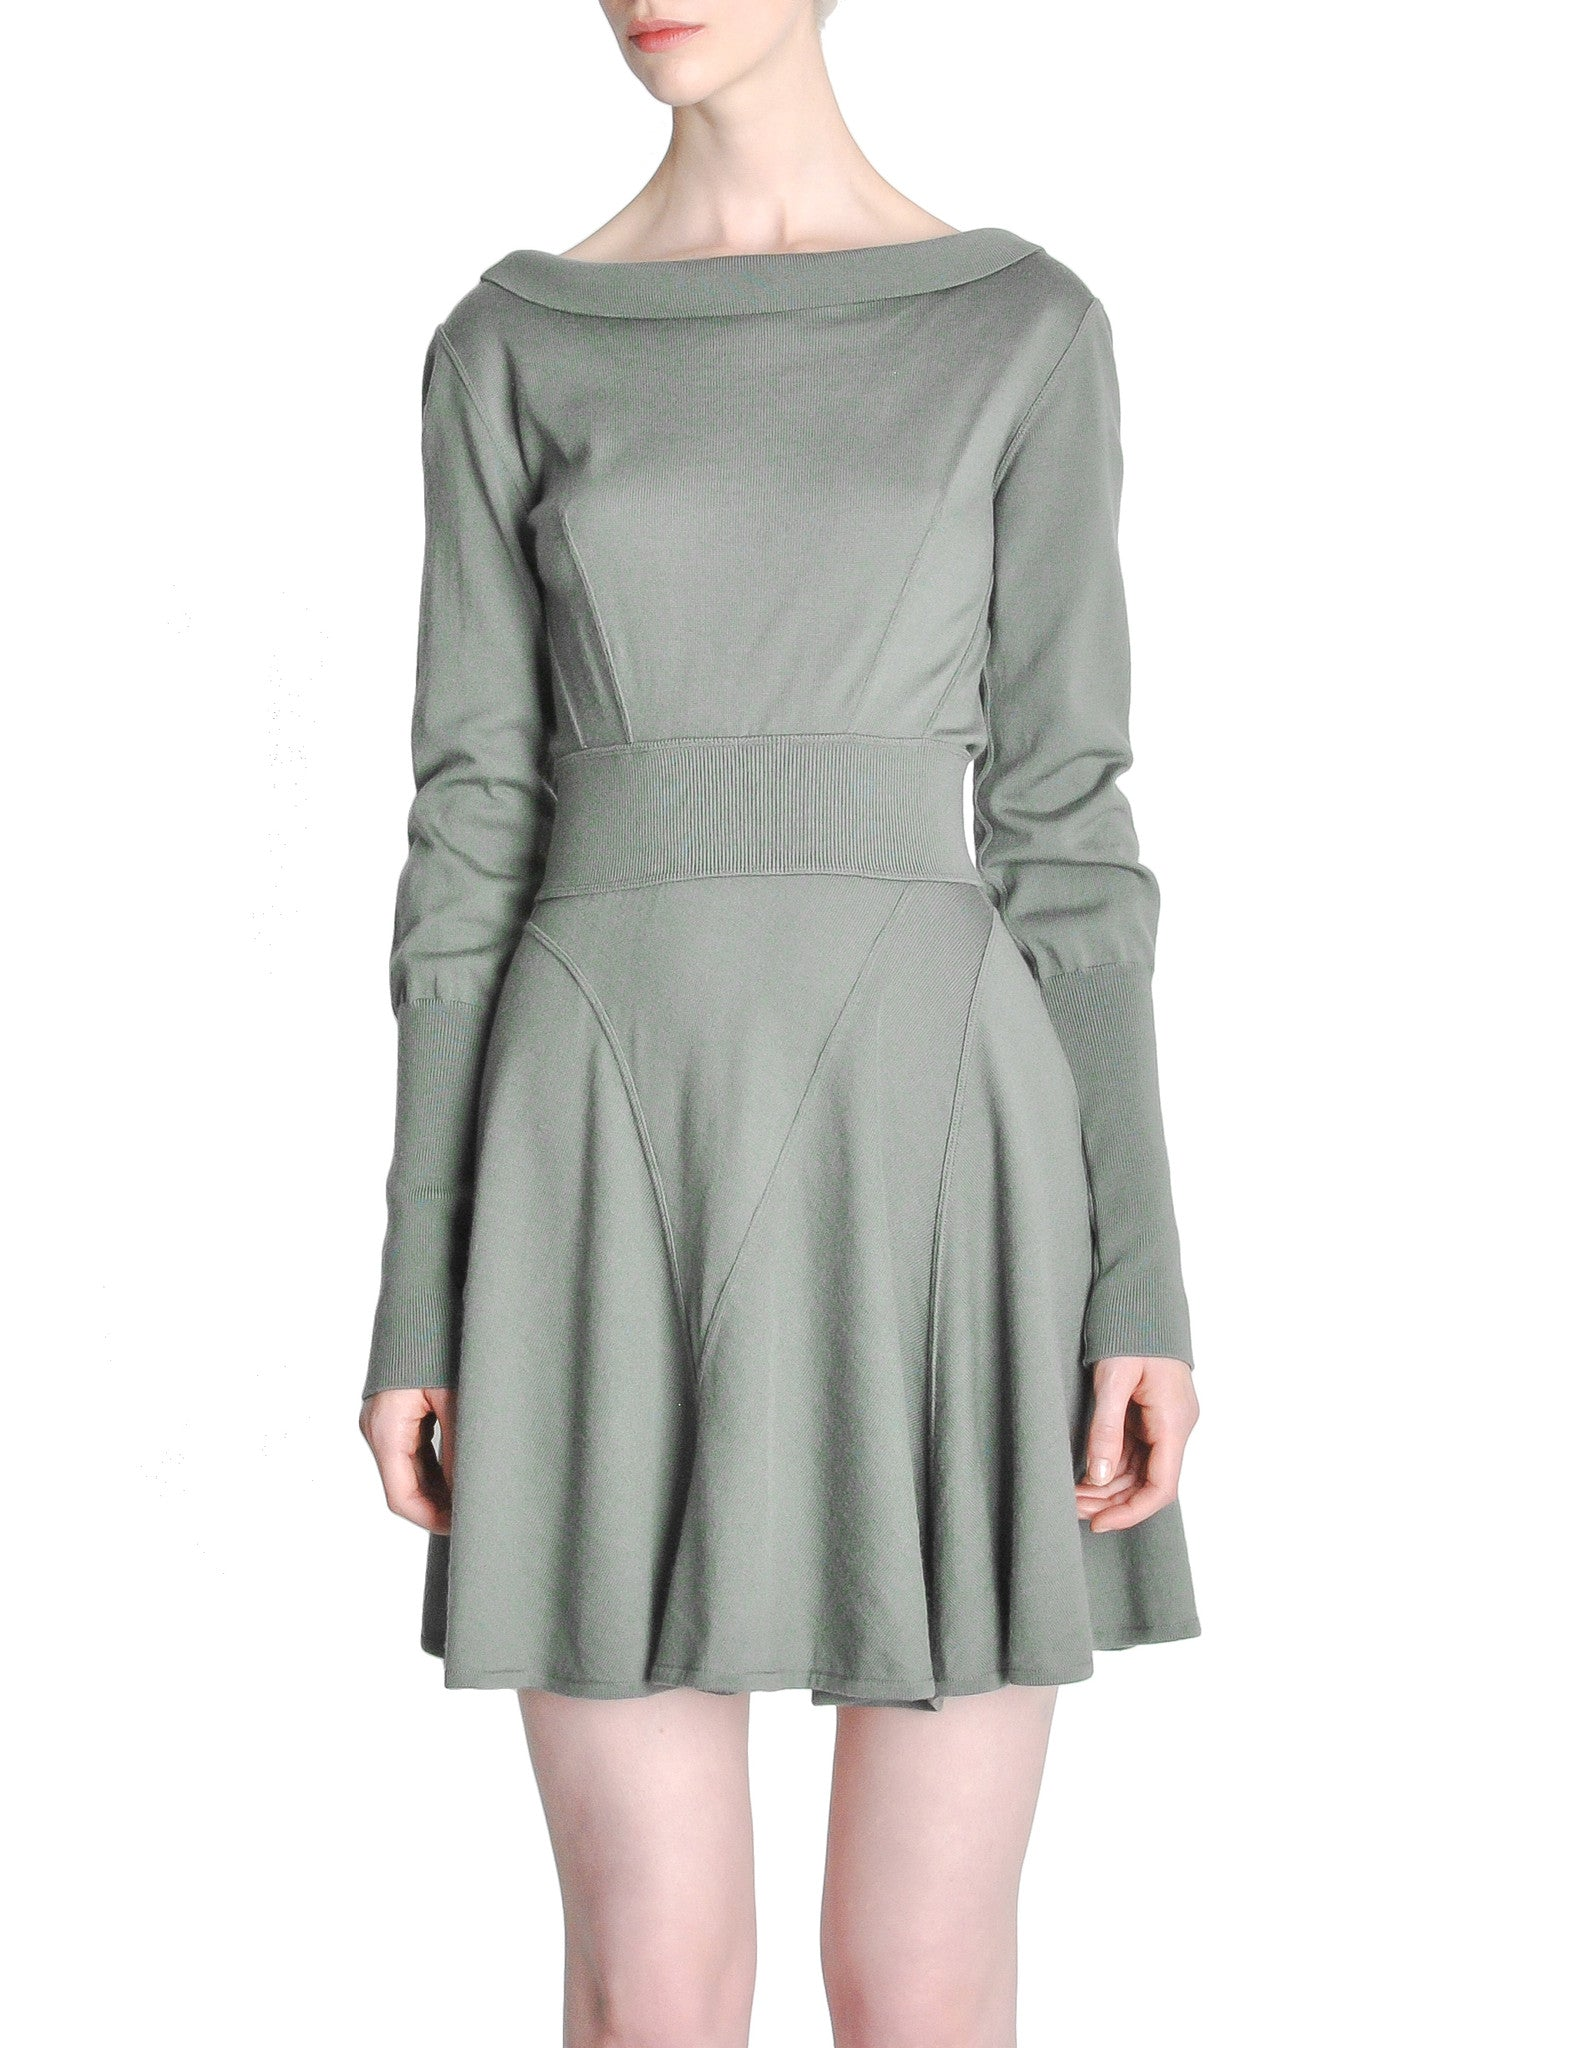 Alaïa Vintage Sage Green Deep V Back Dress - Amarcord Vintage Fashion  - 1